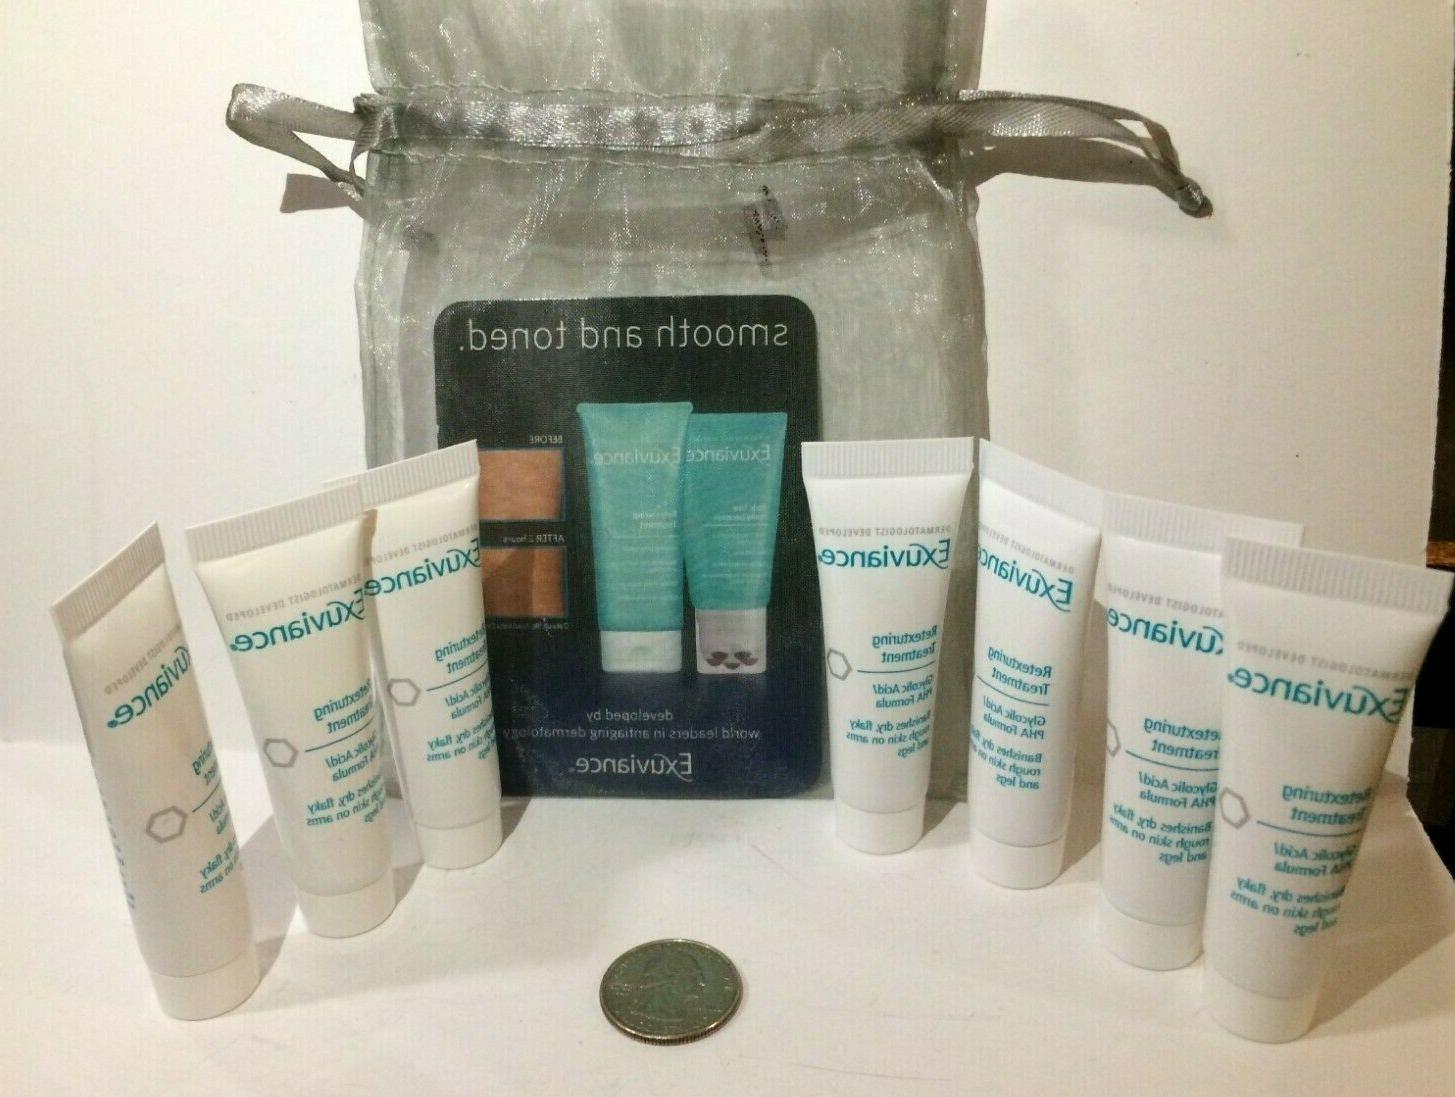 lot of 7 retexturing treatment glycolic acid